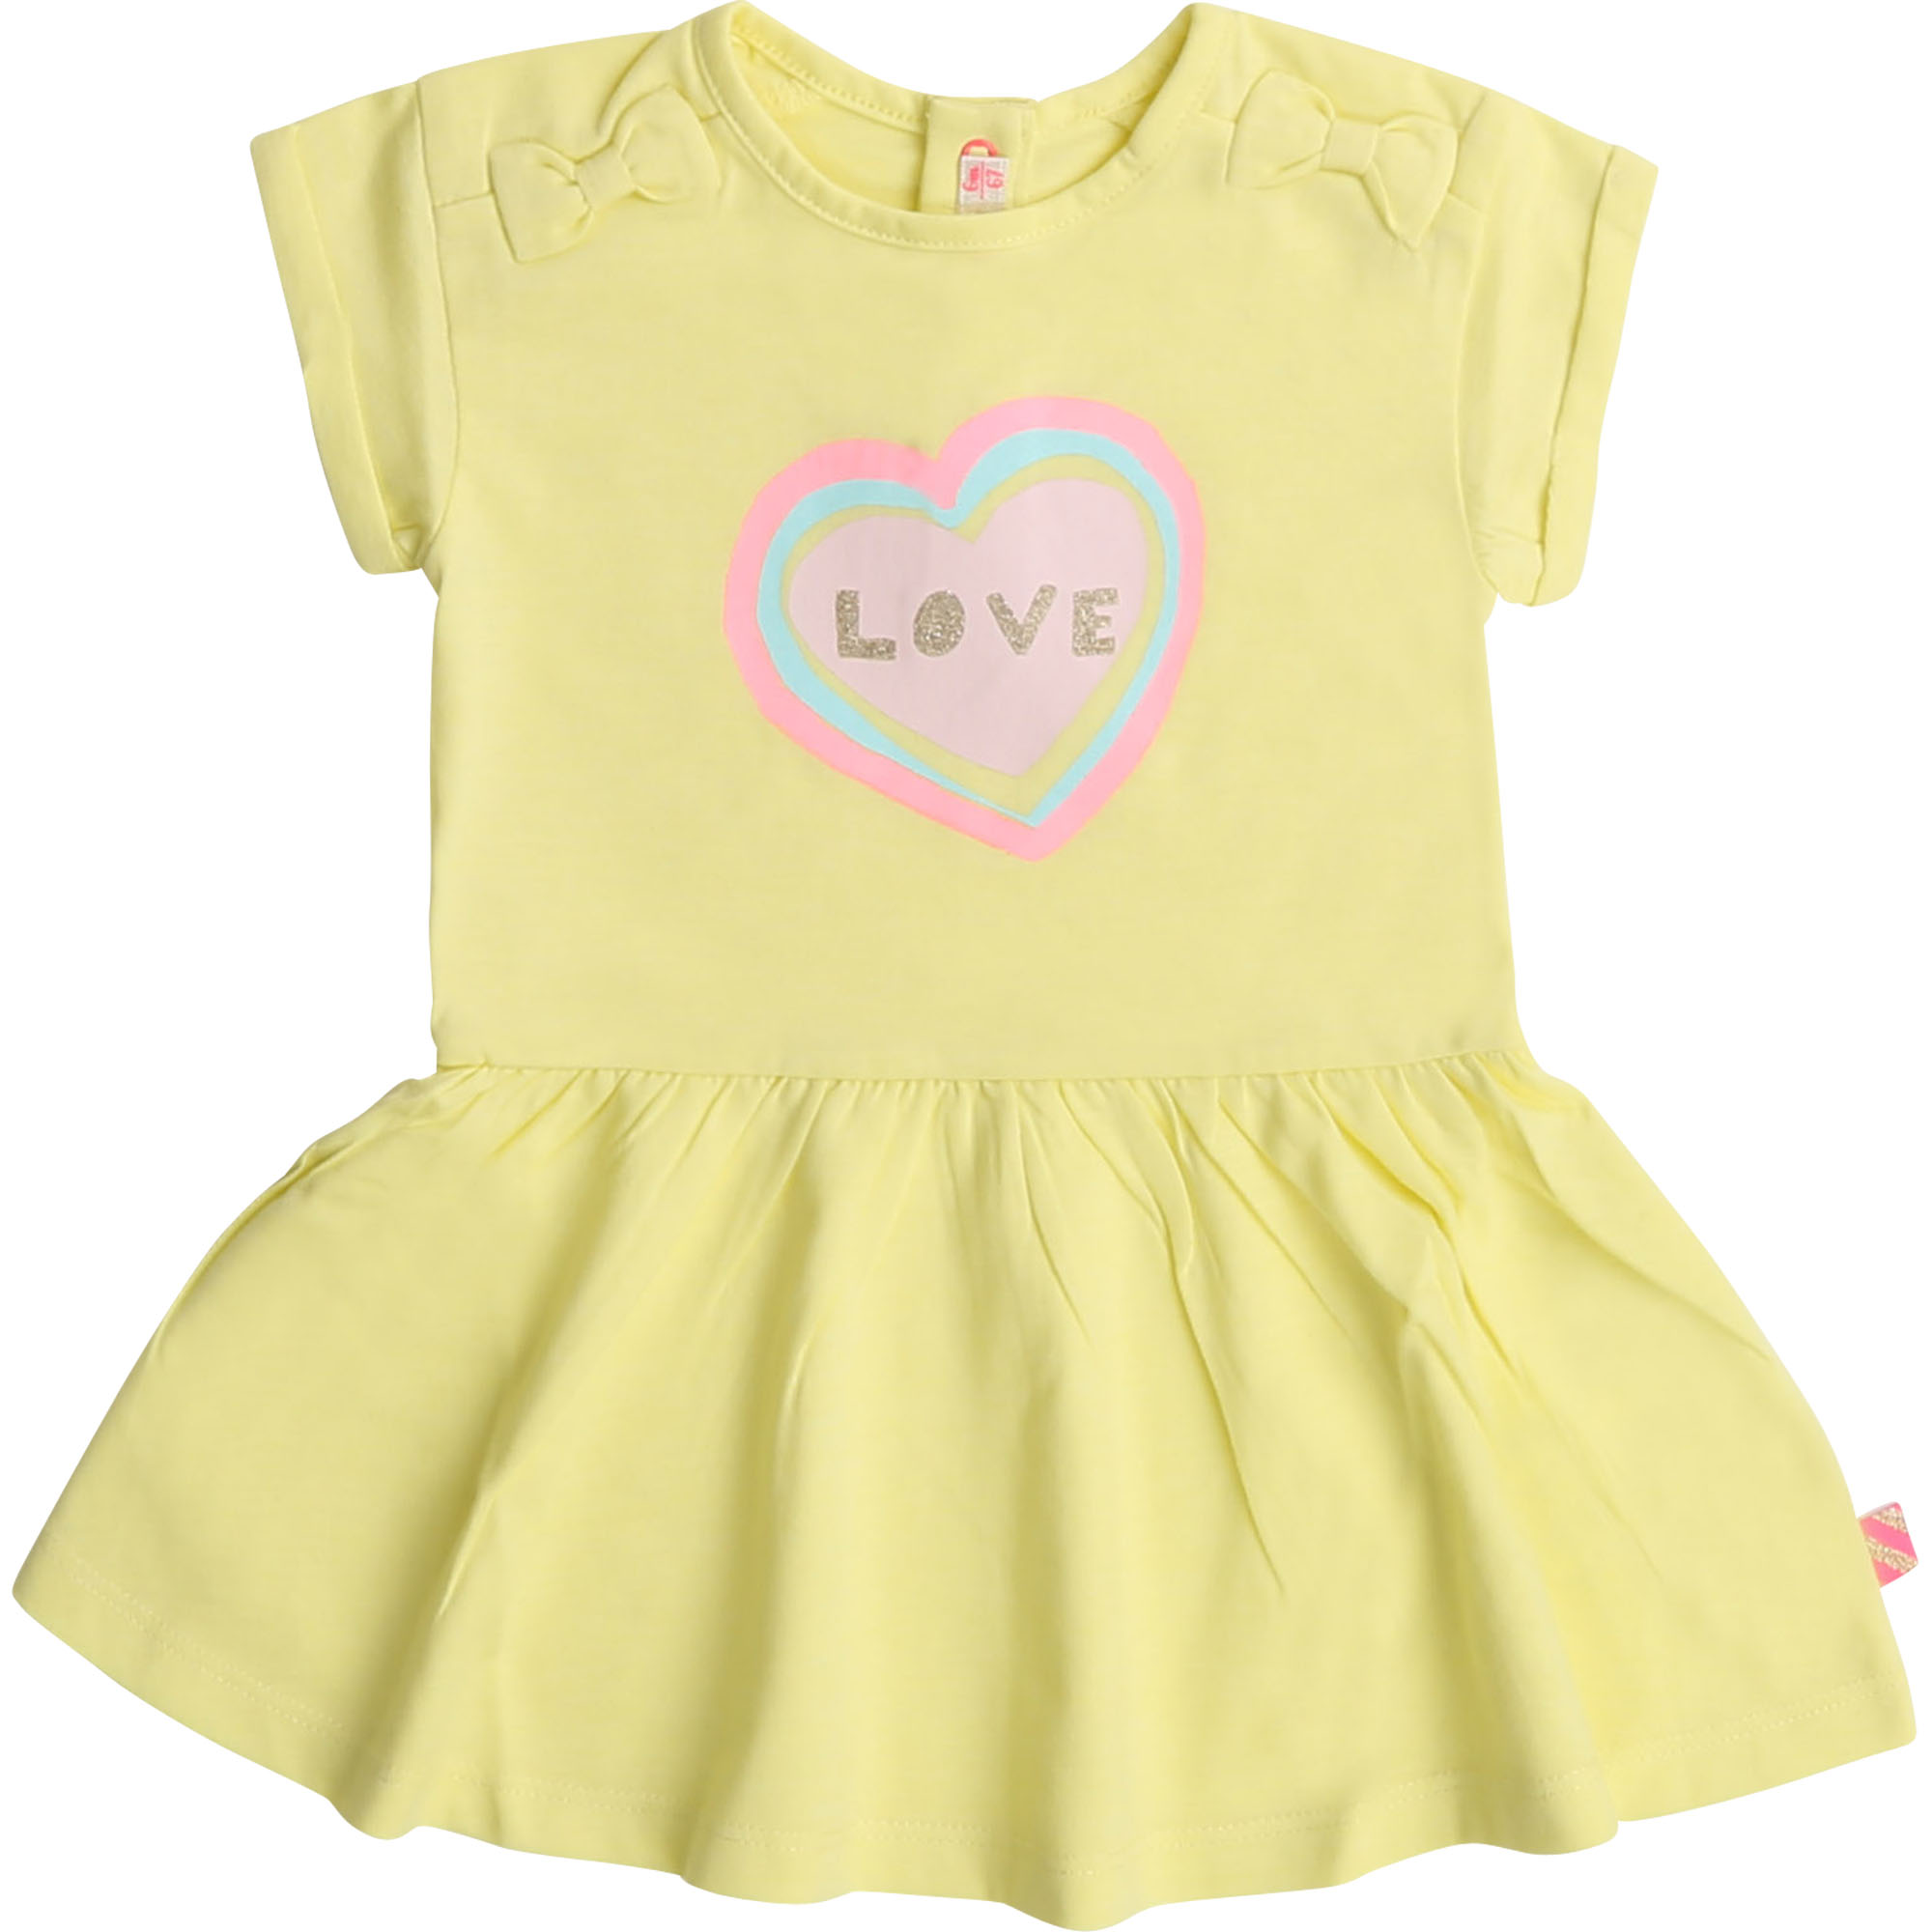 Robe en jersey taille basse BILLIEBLUSH pour FILLE